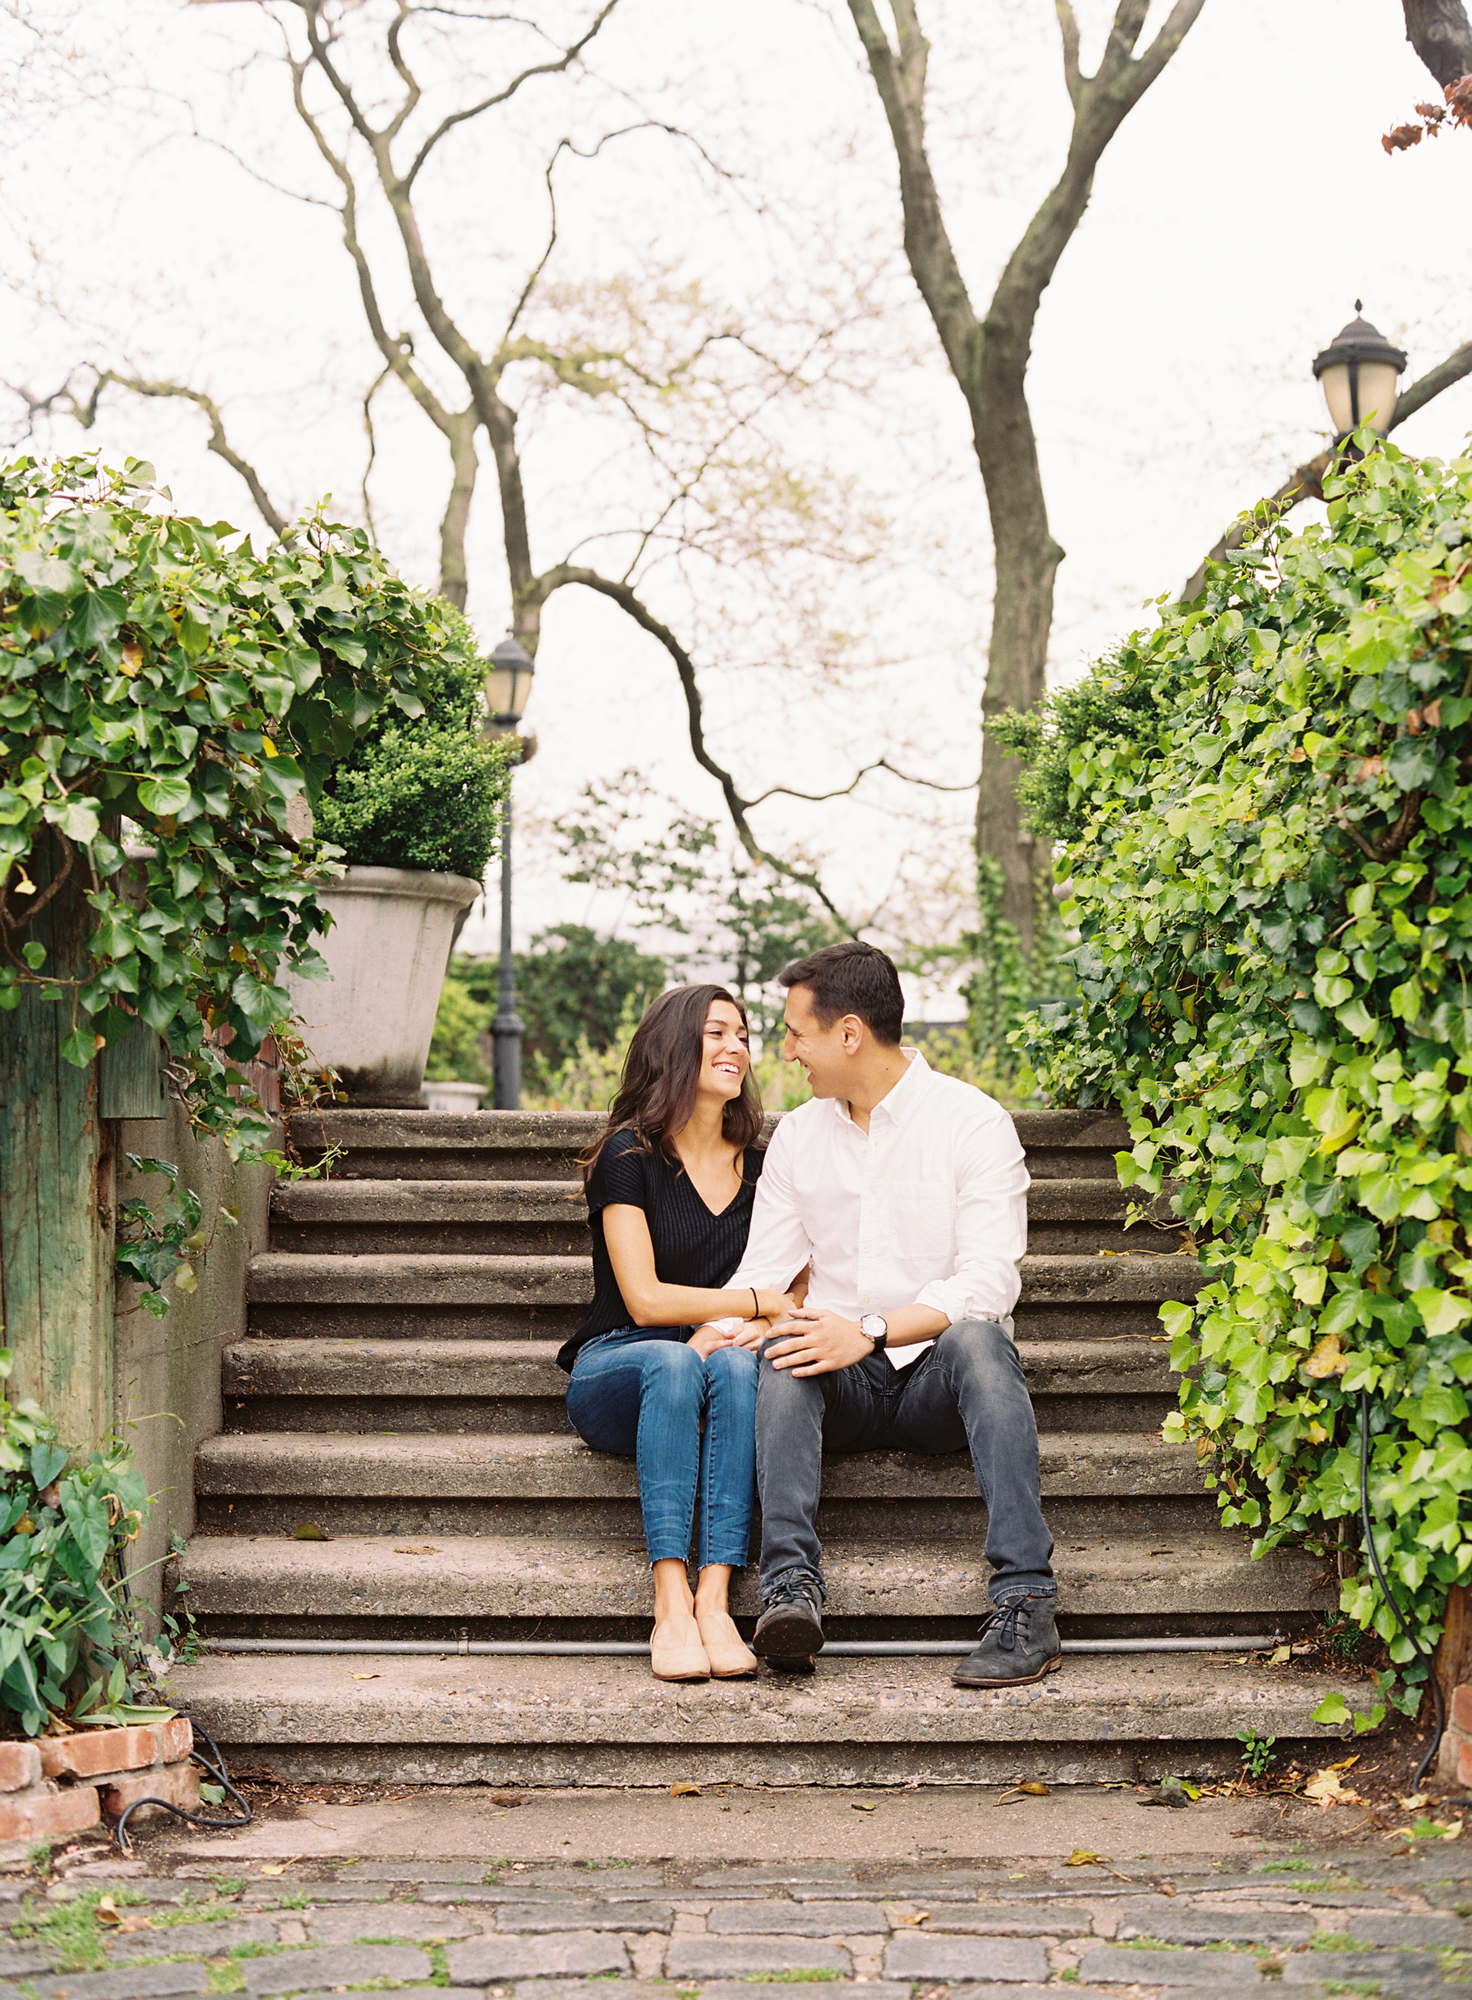 brooklyn-engagement-photos-004.jpg